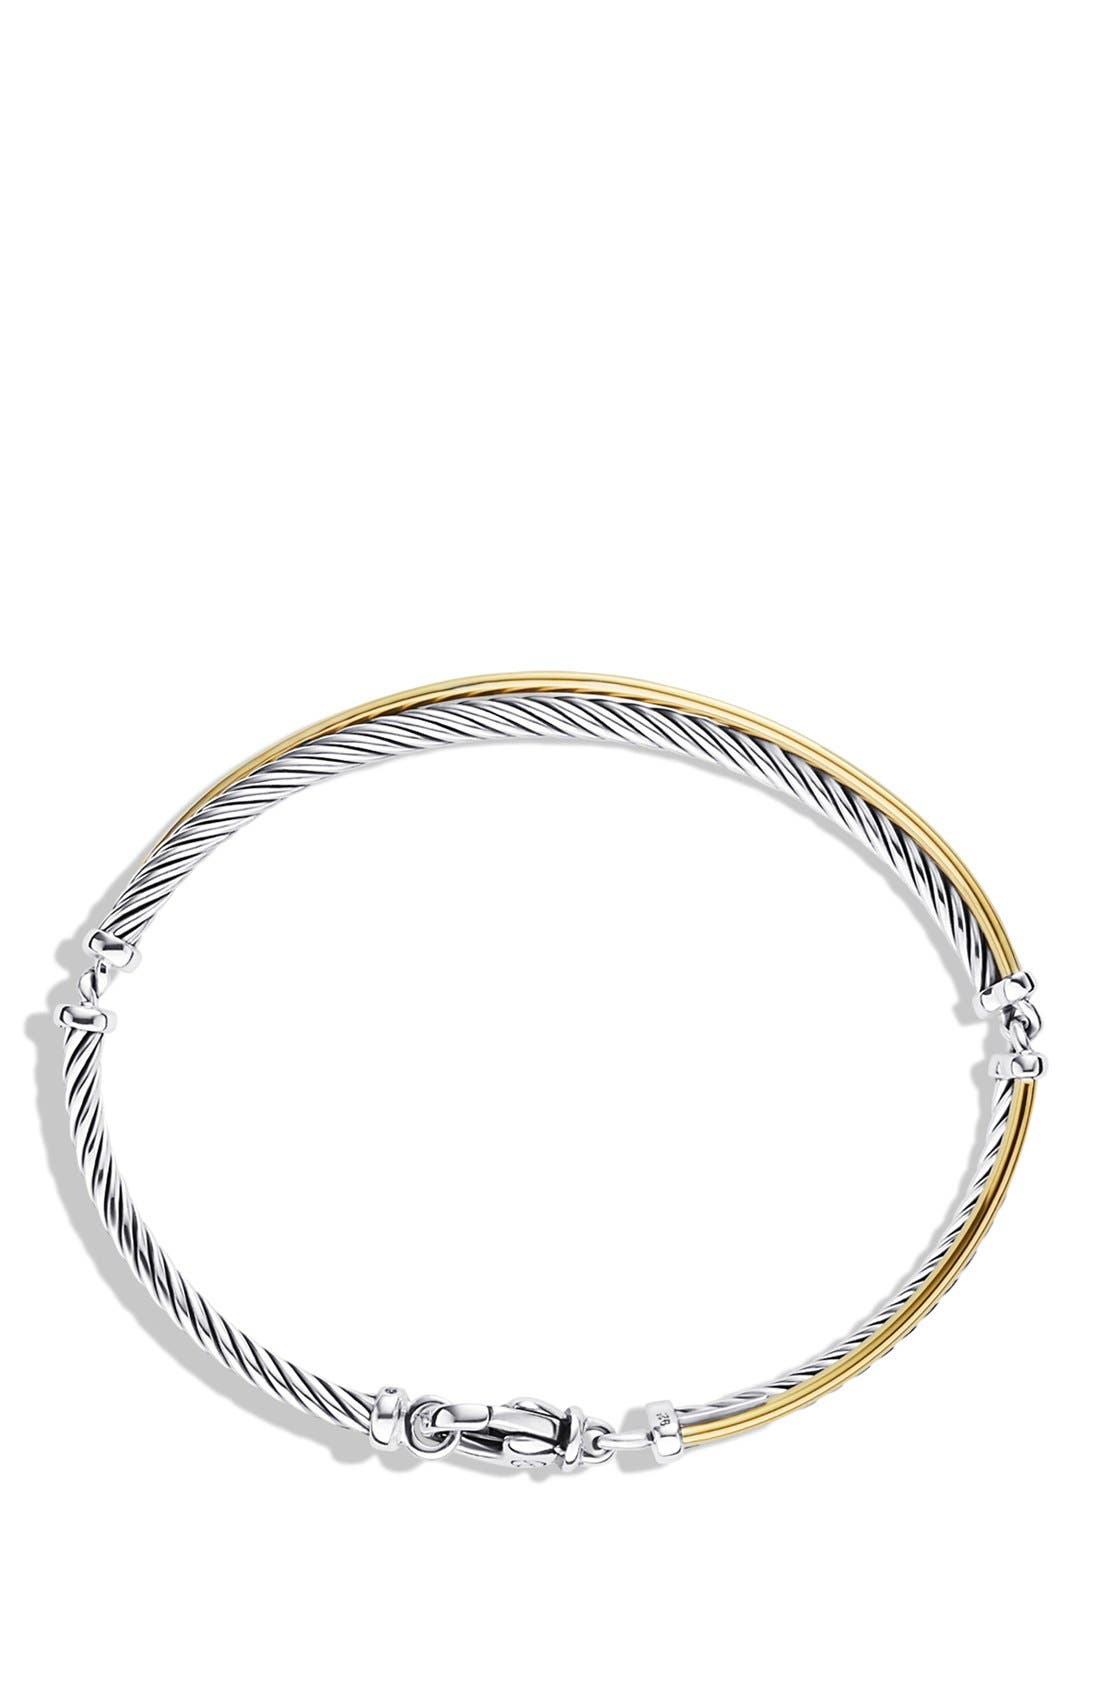 'Crossover' Bracelet with Gold,                             Alternate thumbnail 2, color,                             Two Tone